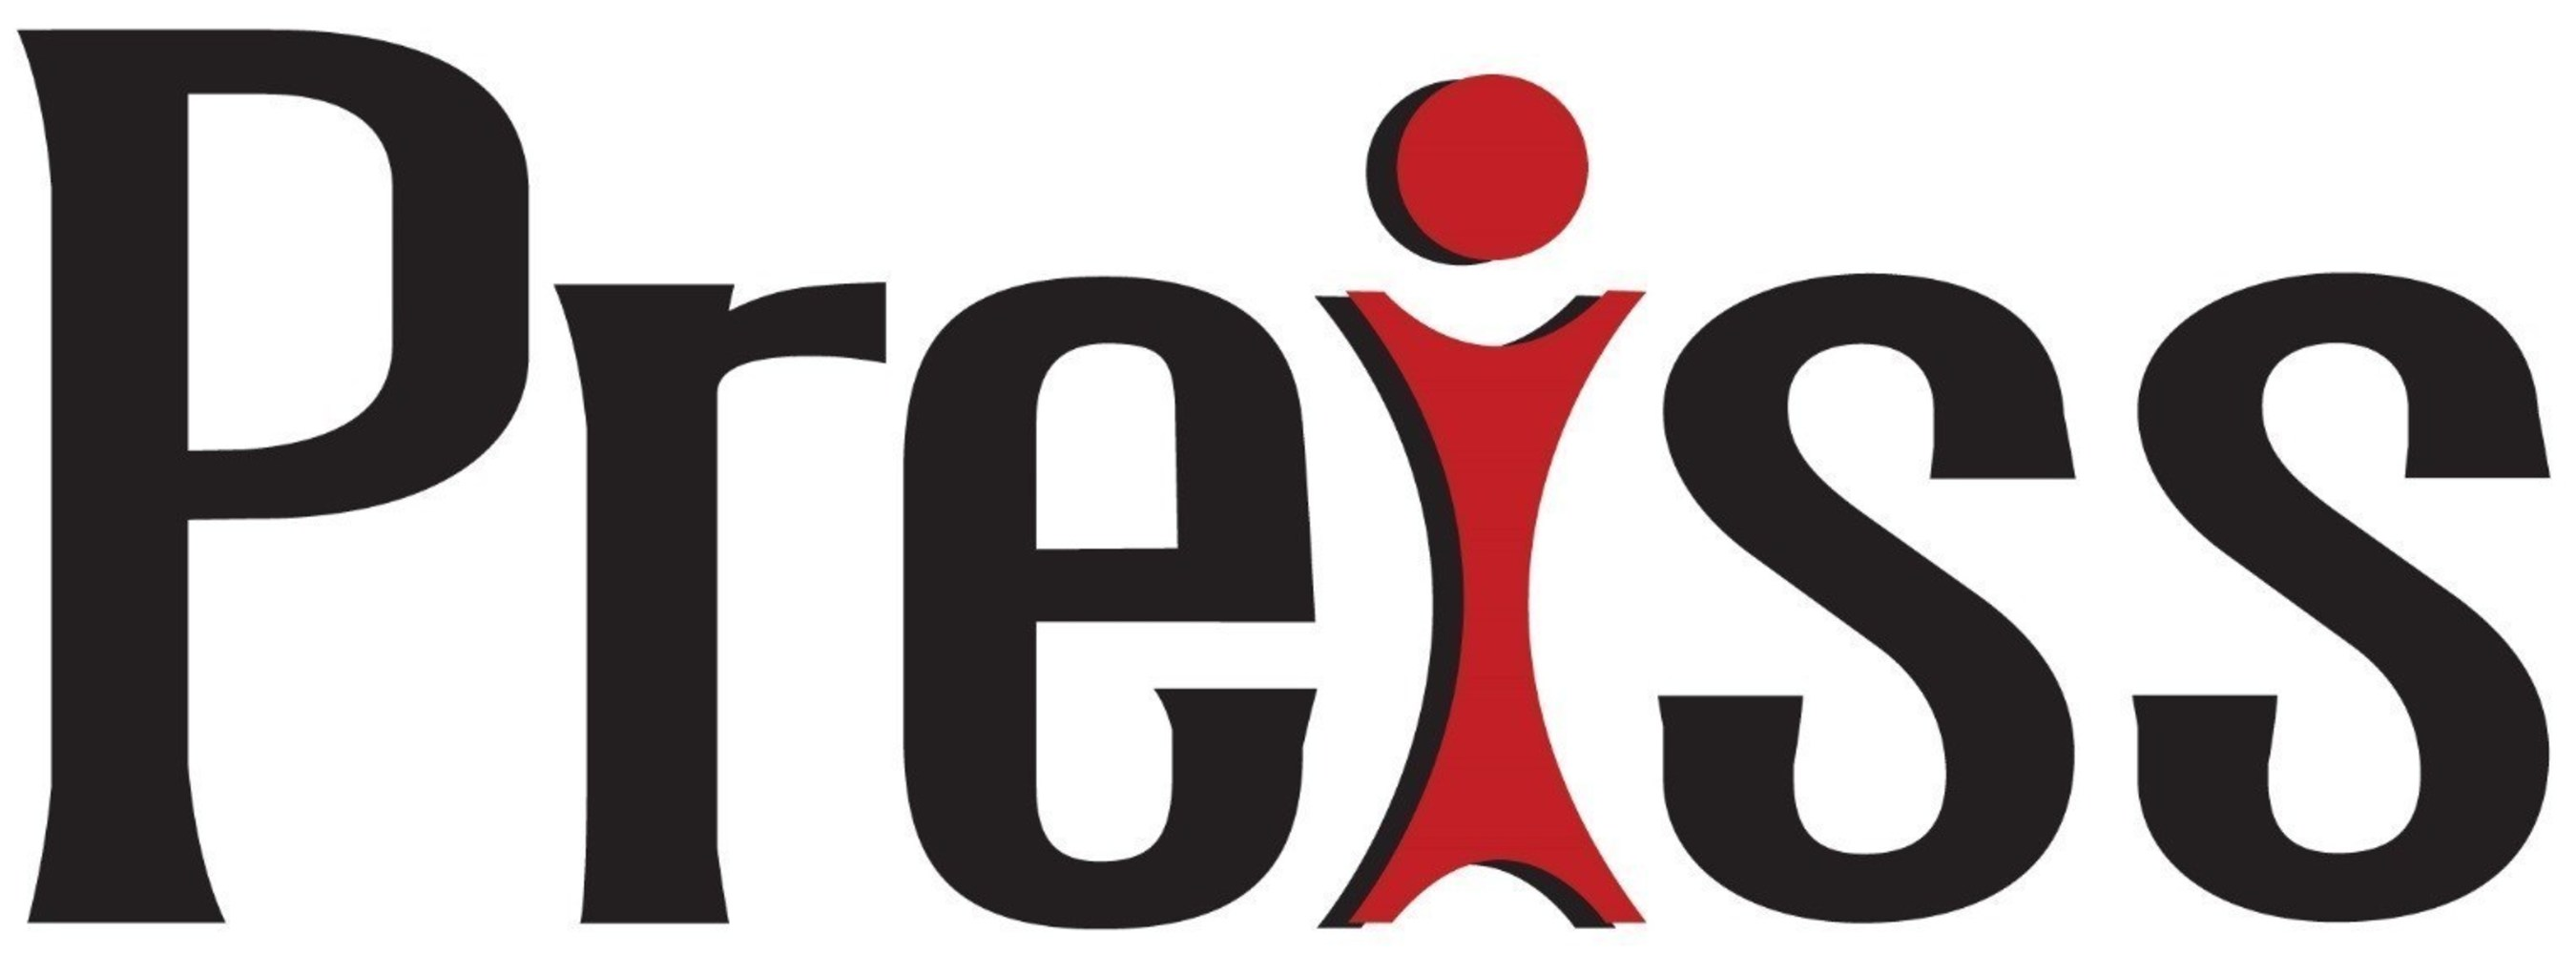 The Preiss Company Logo